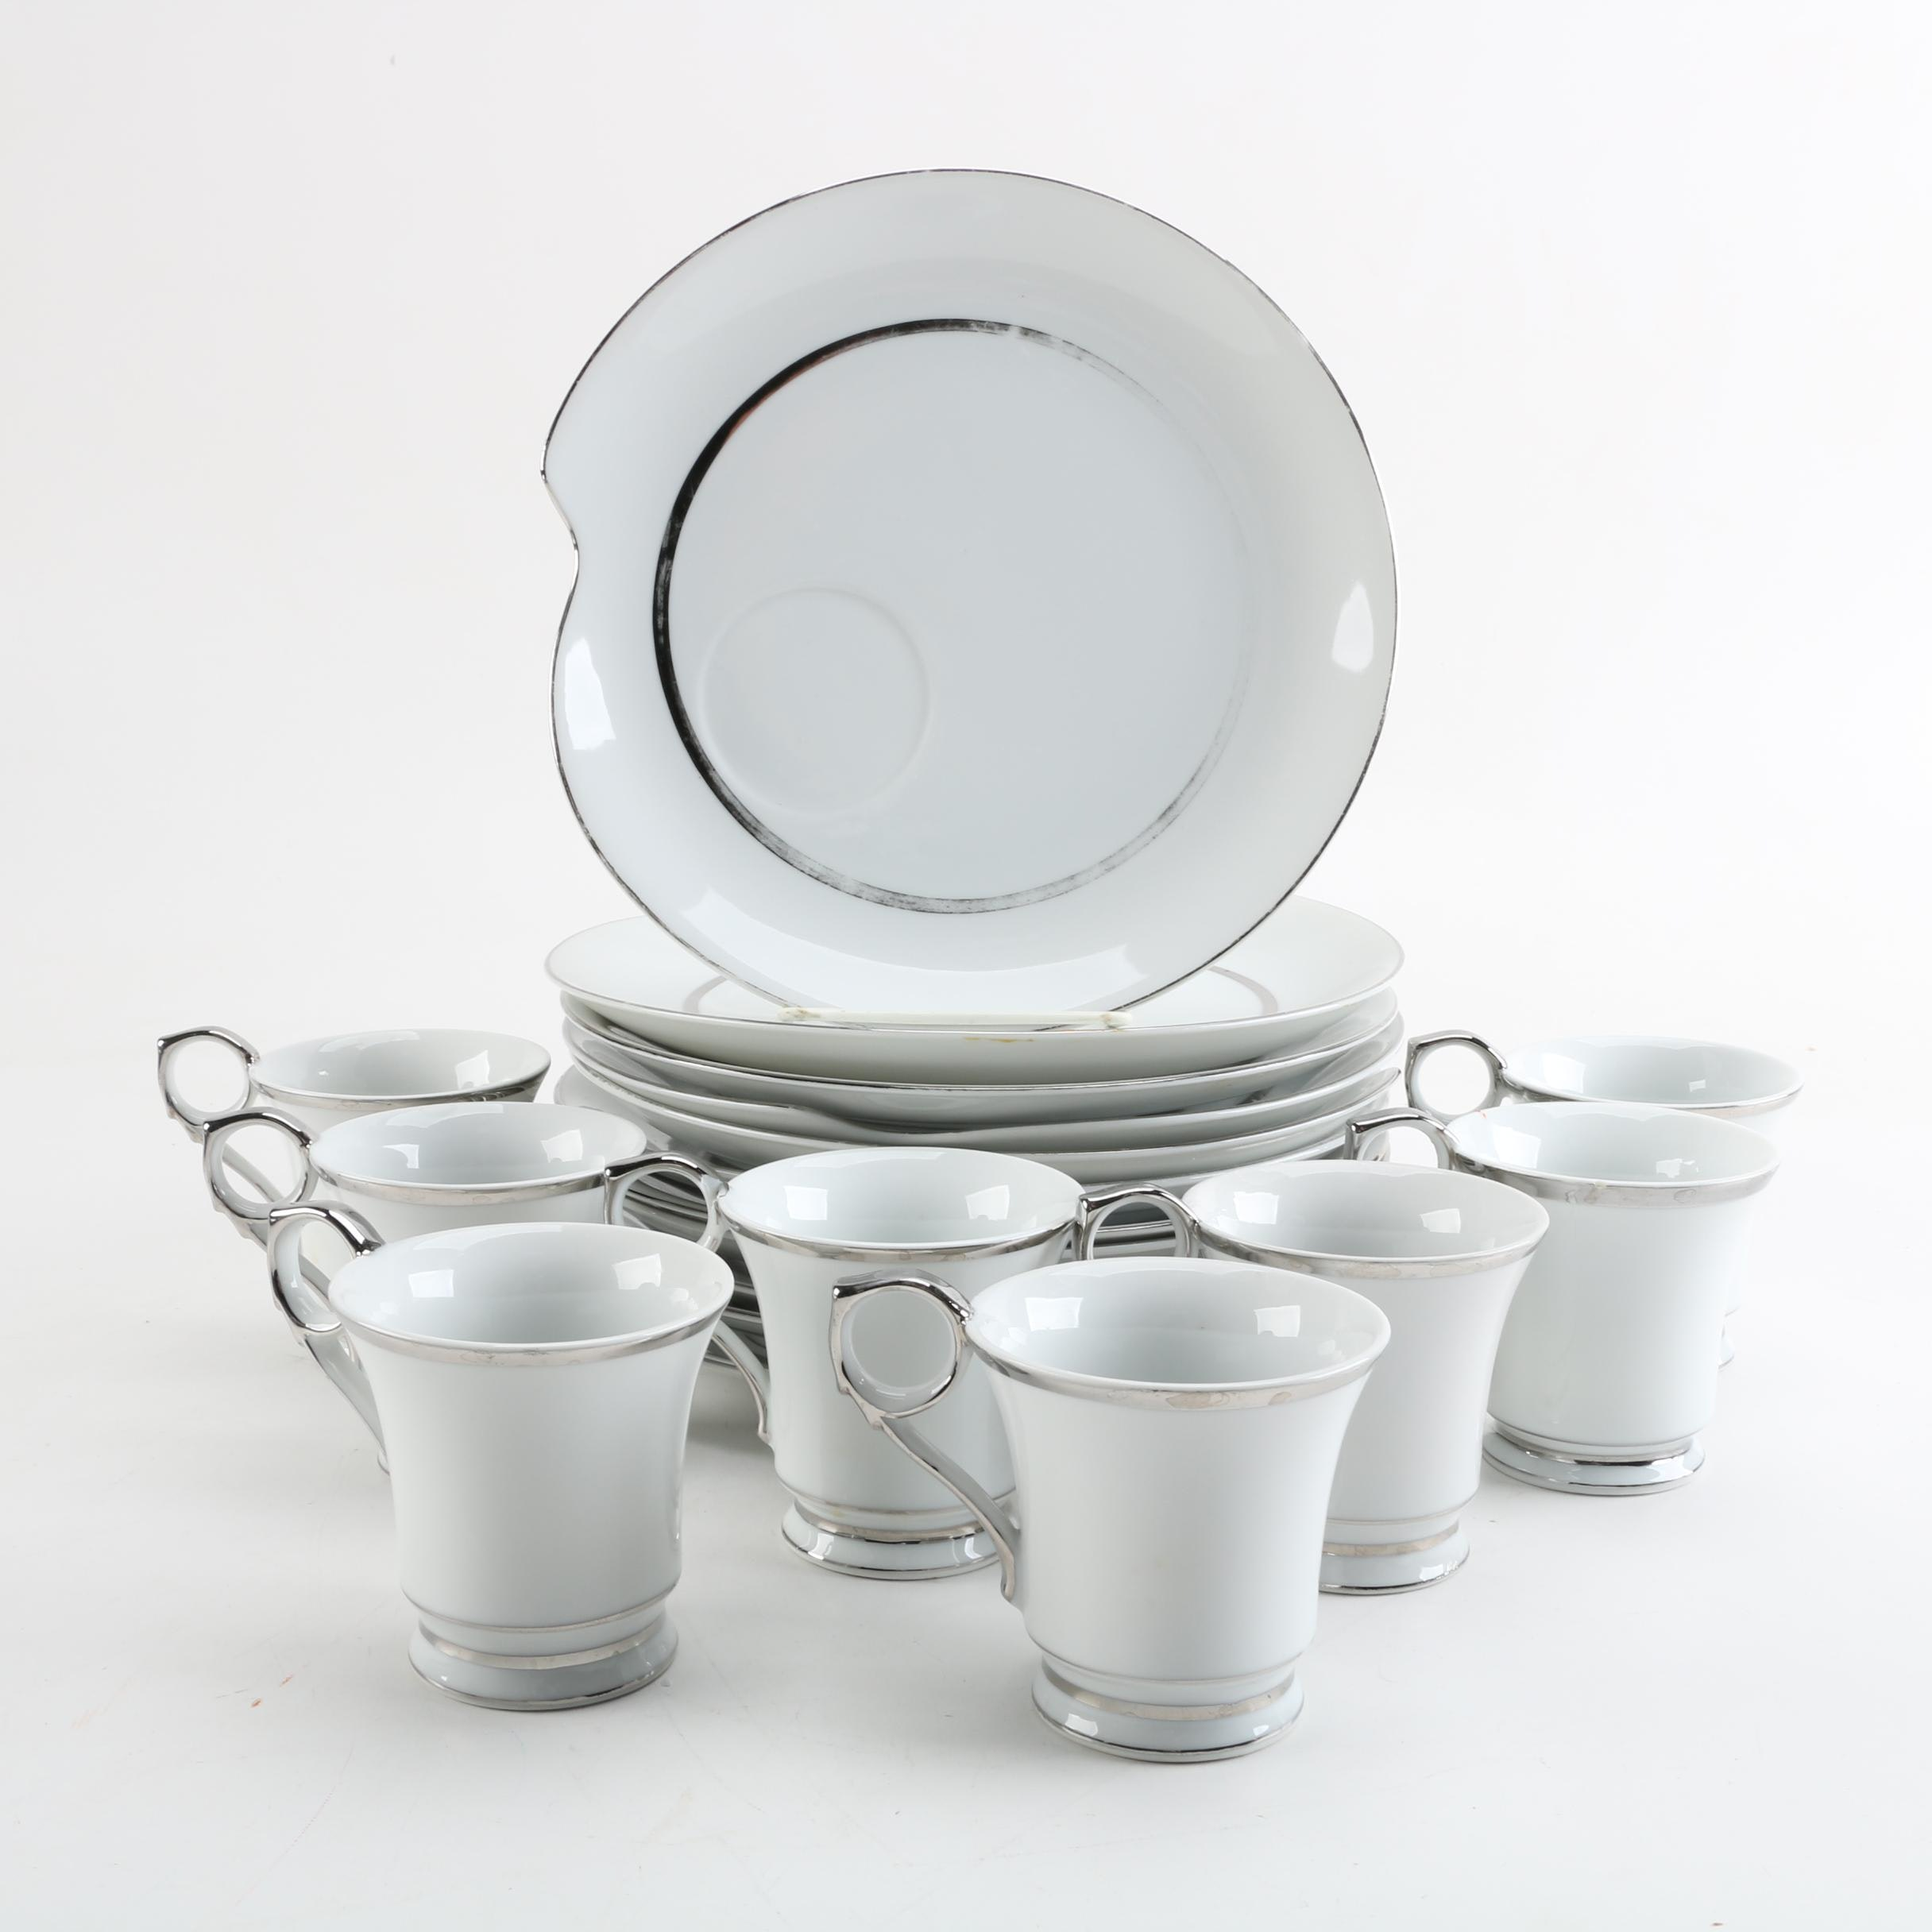 Vintage Renaissance Porcelain Snack Plates and Mugs with Silver Accents